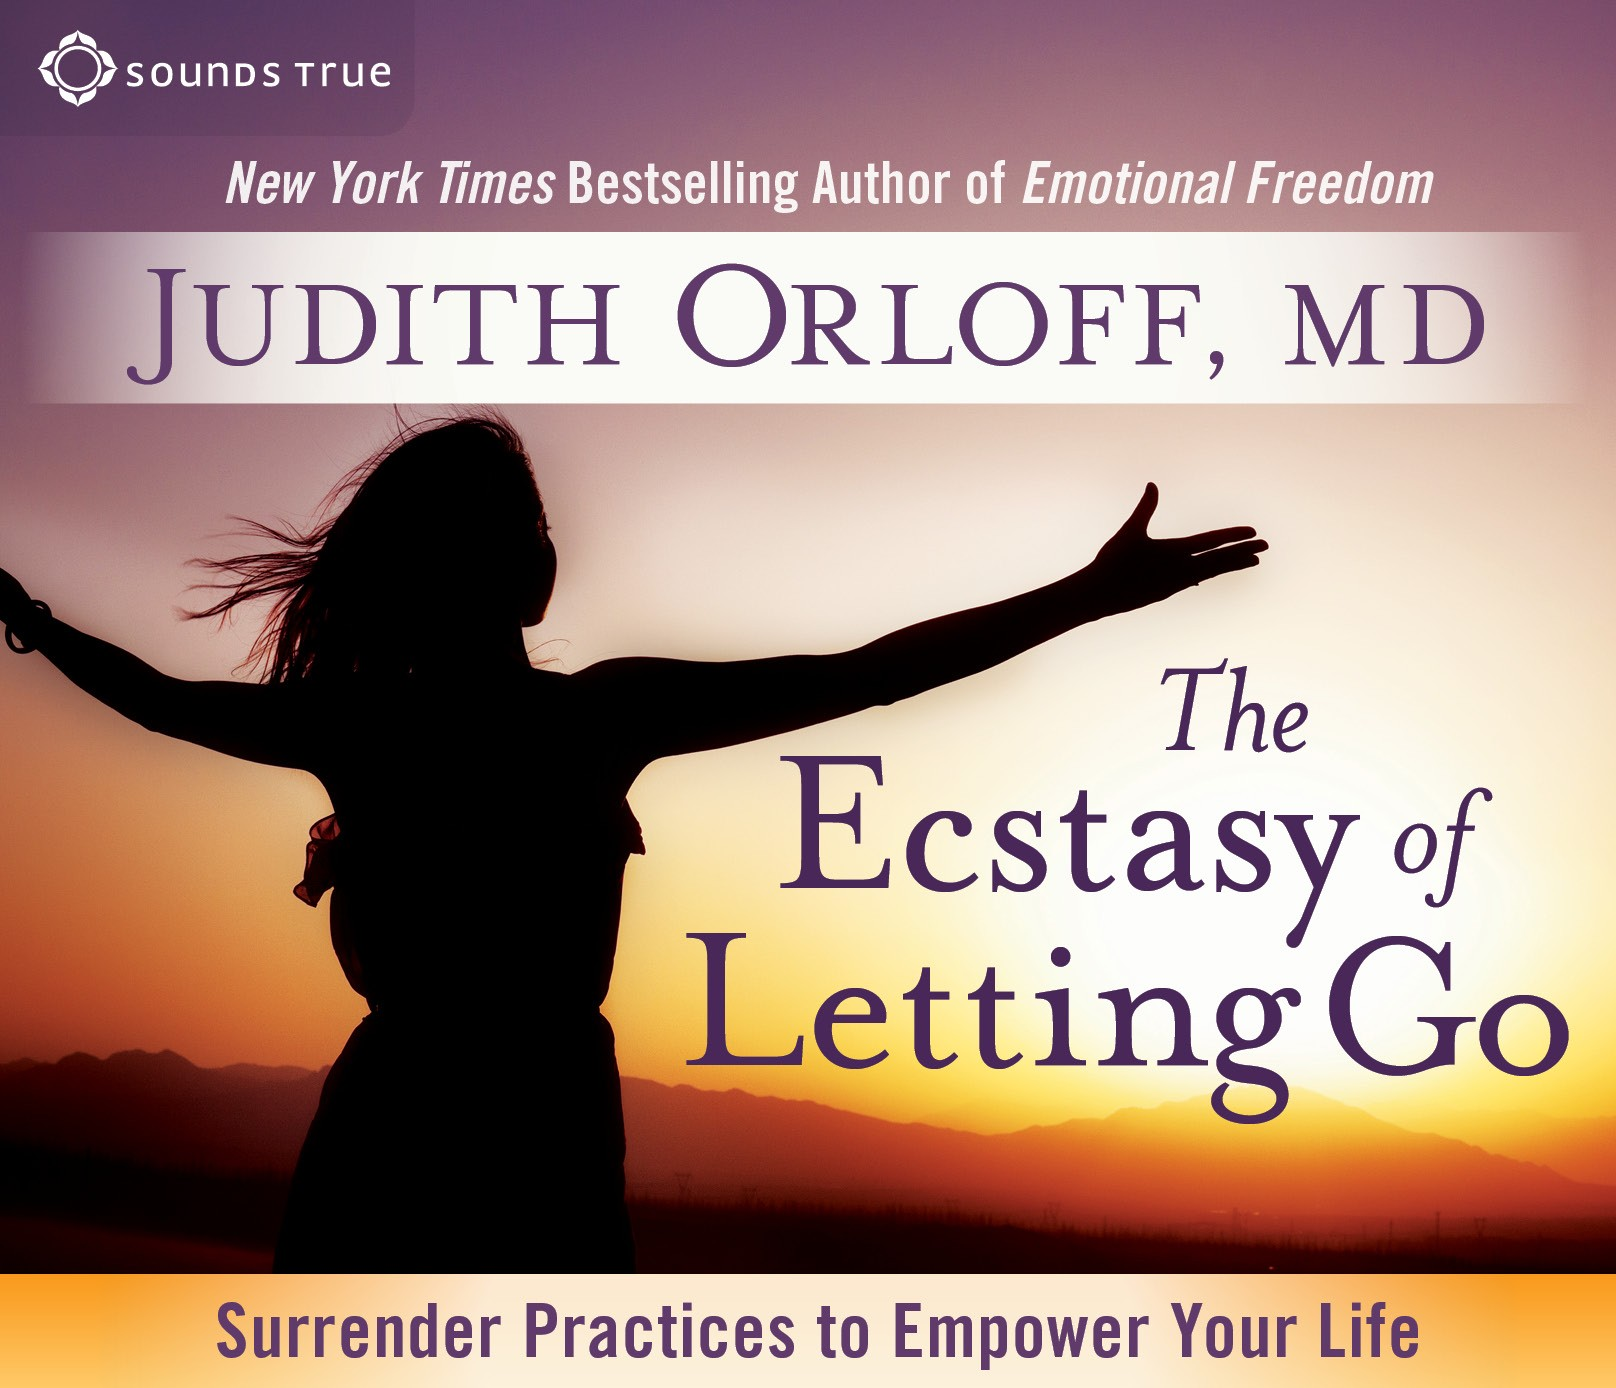 The Ecstasy of Letting Go